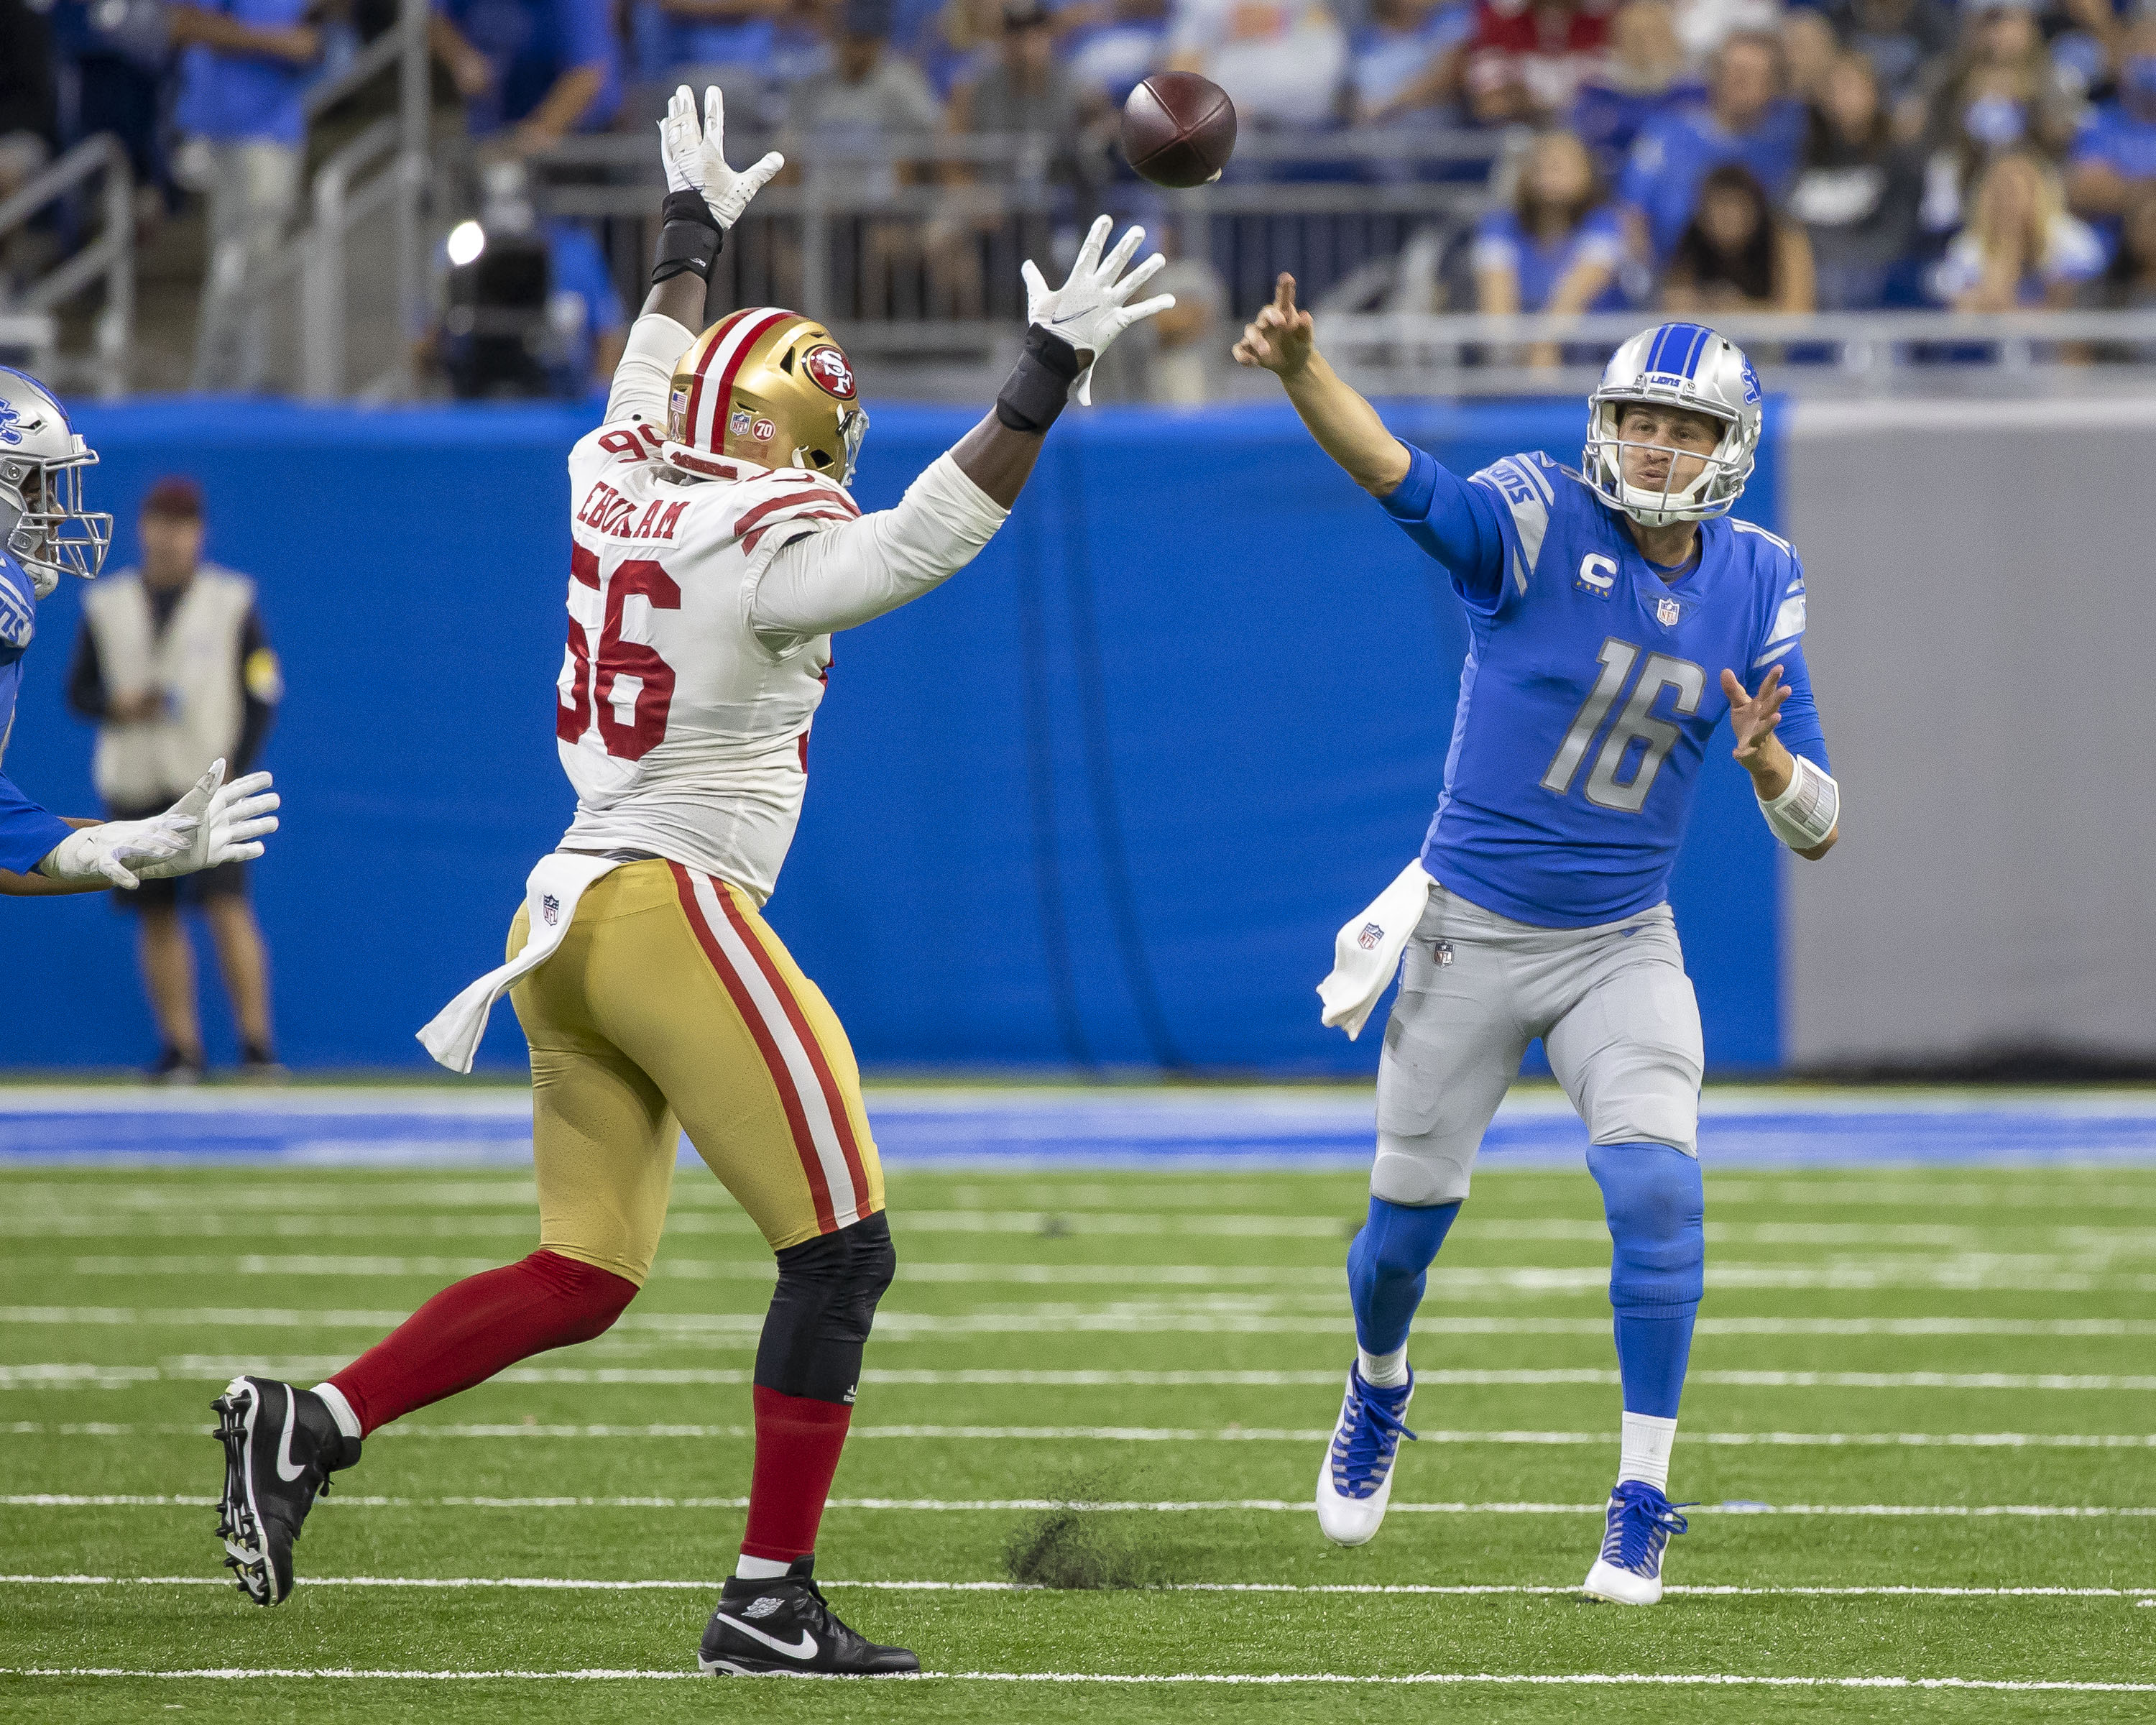 Detroit Lions quarterback Jared Goff (16) throws the ball over the arms of San Francisco 49ers outside linebacker Samson Ebukam (56) at Ford Field.